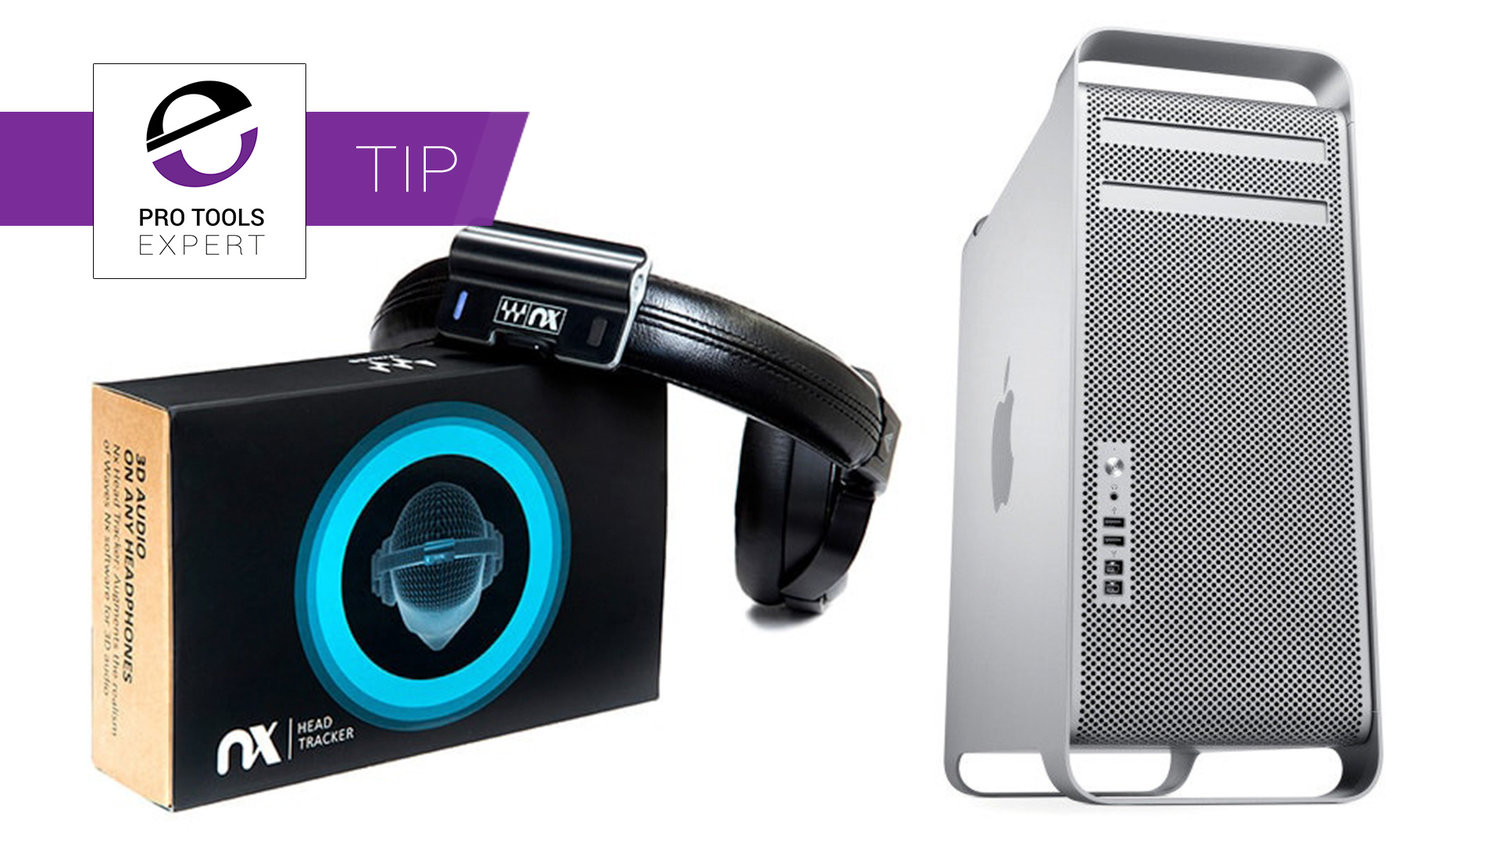 How To Get Waves NX Bluetooth Head Tracker Working On An Old Mac Pro